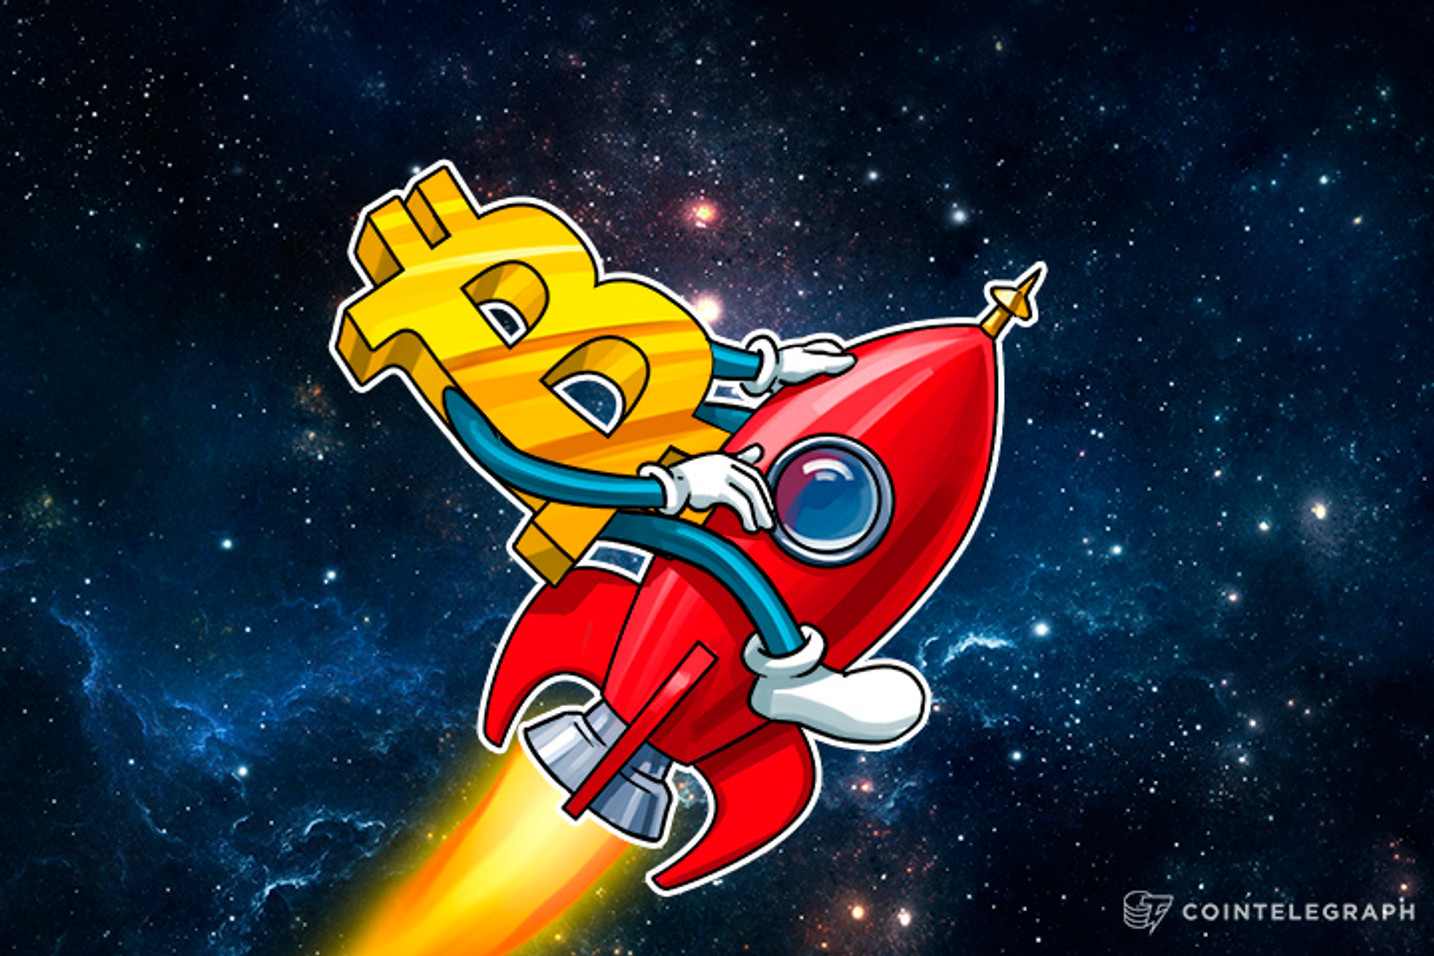 Cloud Miner On Trends Making Bitcoin Attractive Now: Japan, Litecoin, Dwindling Fiat